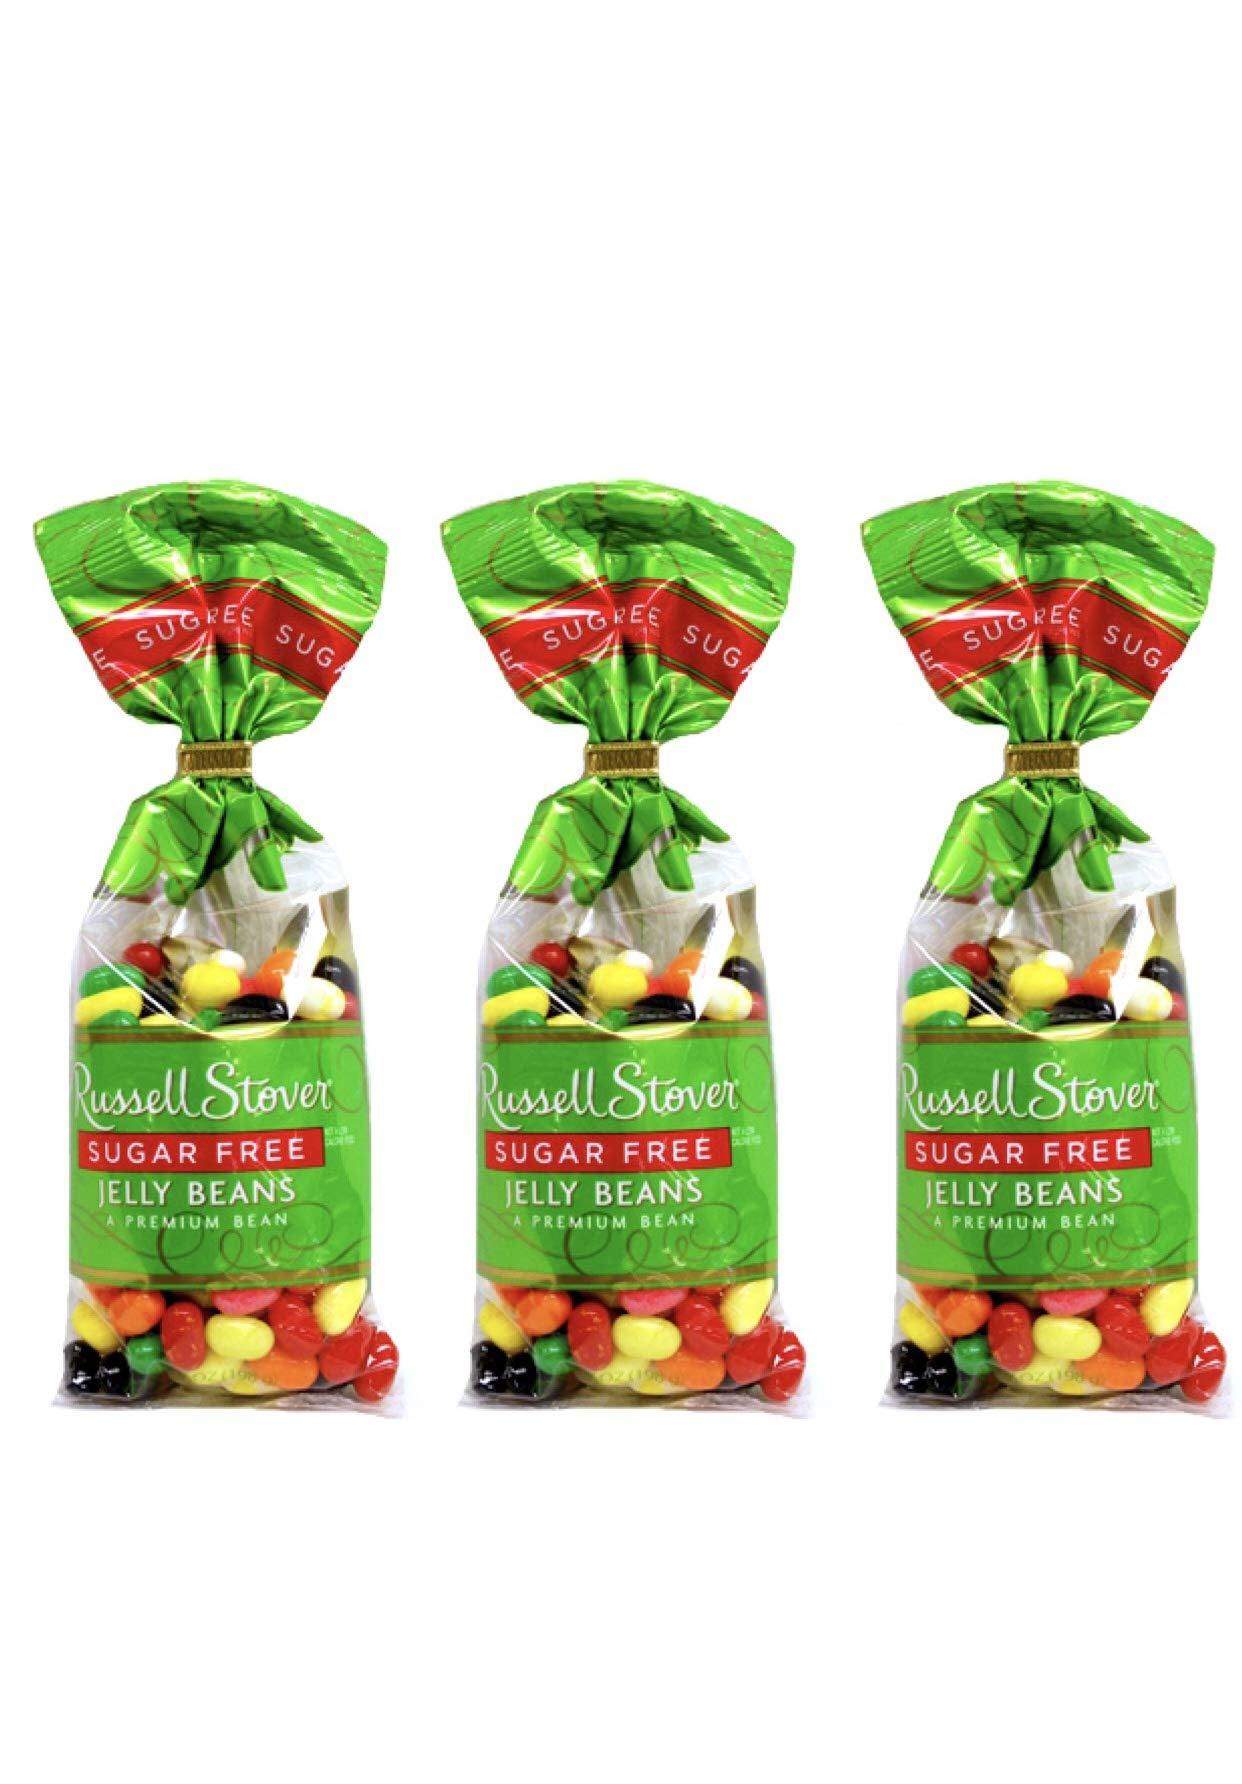 Russell Stover Sugar Free Jelly Beans Easter Candy - Pack of 3 Bags - 7 oz per Bag by Russell Stover